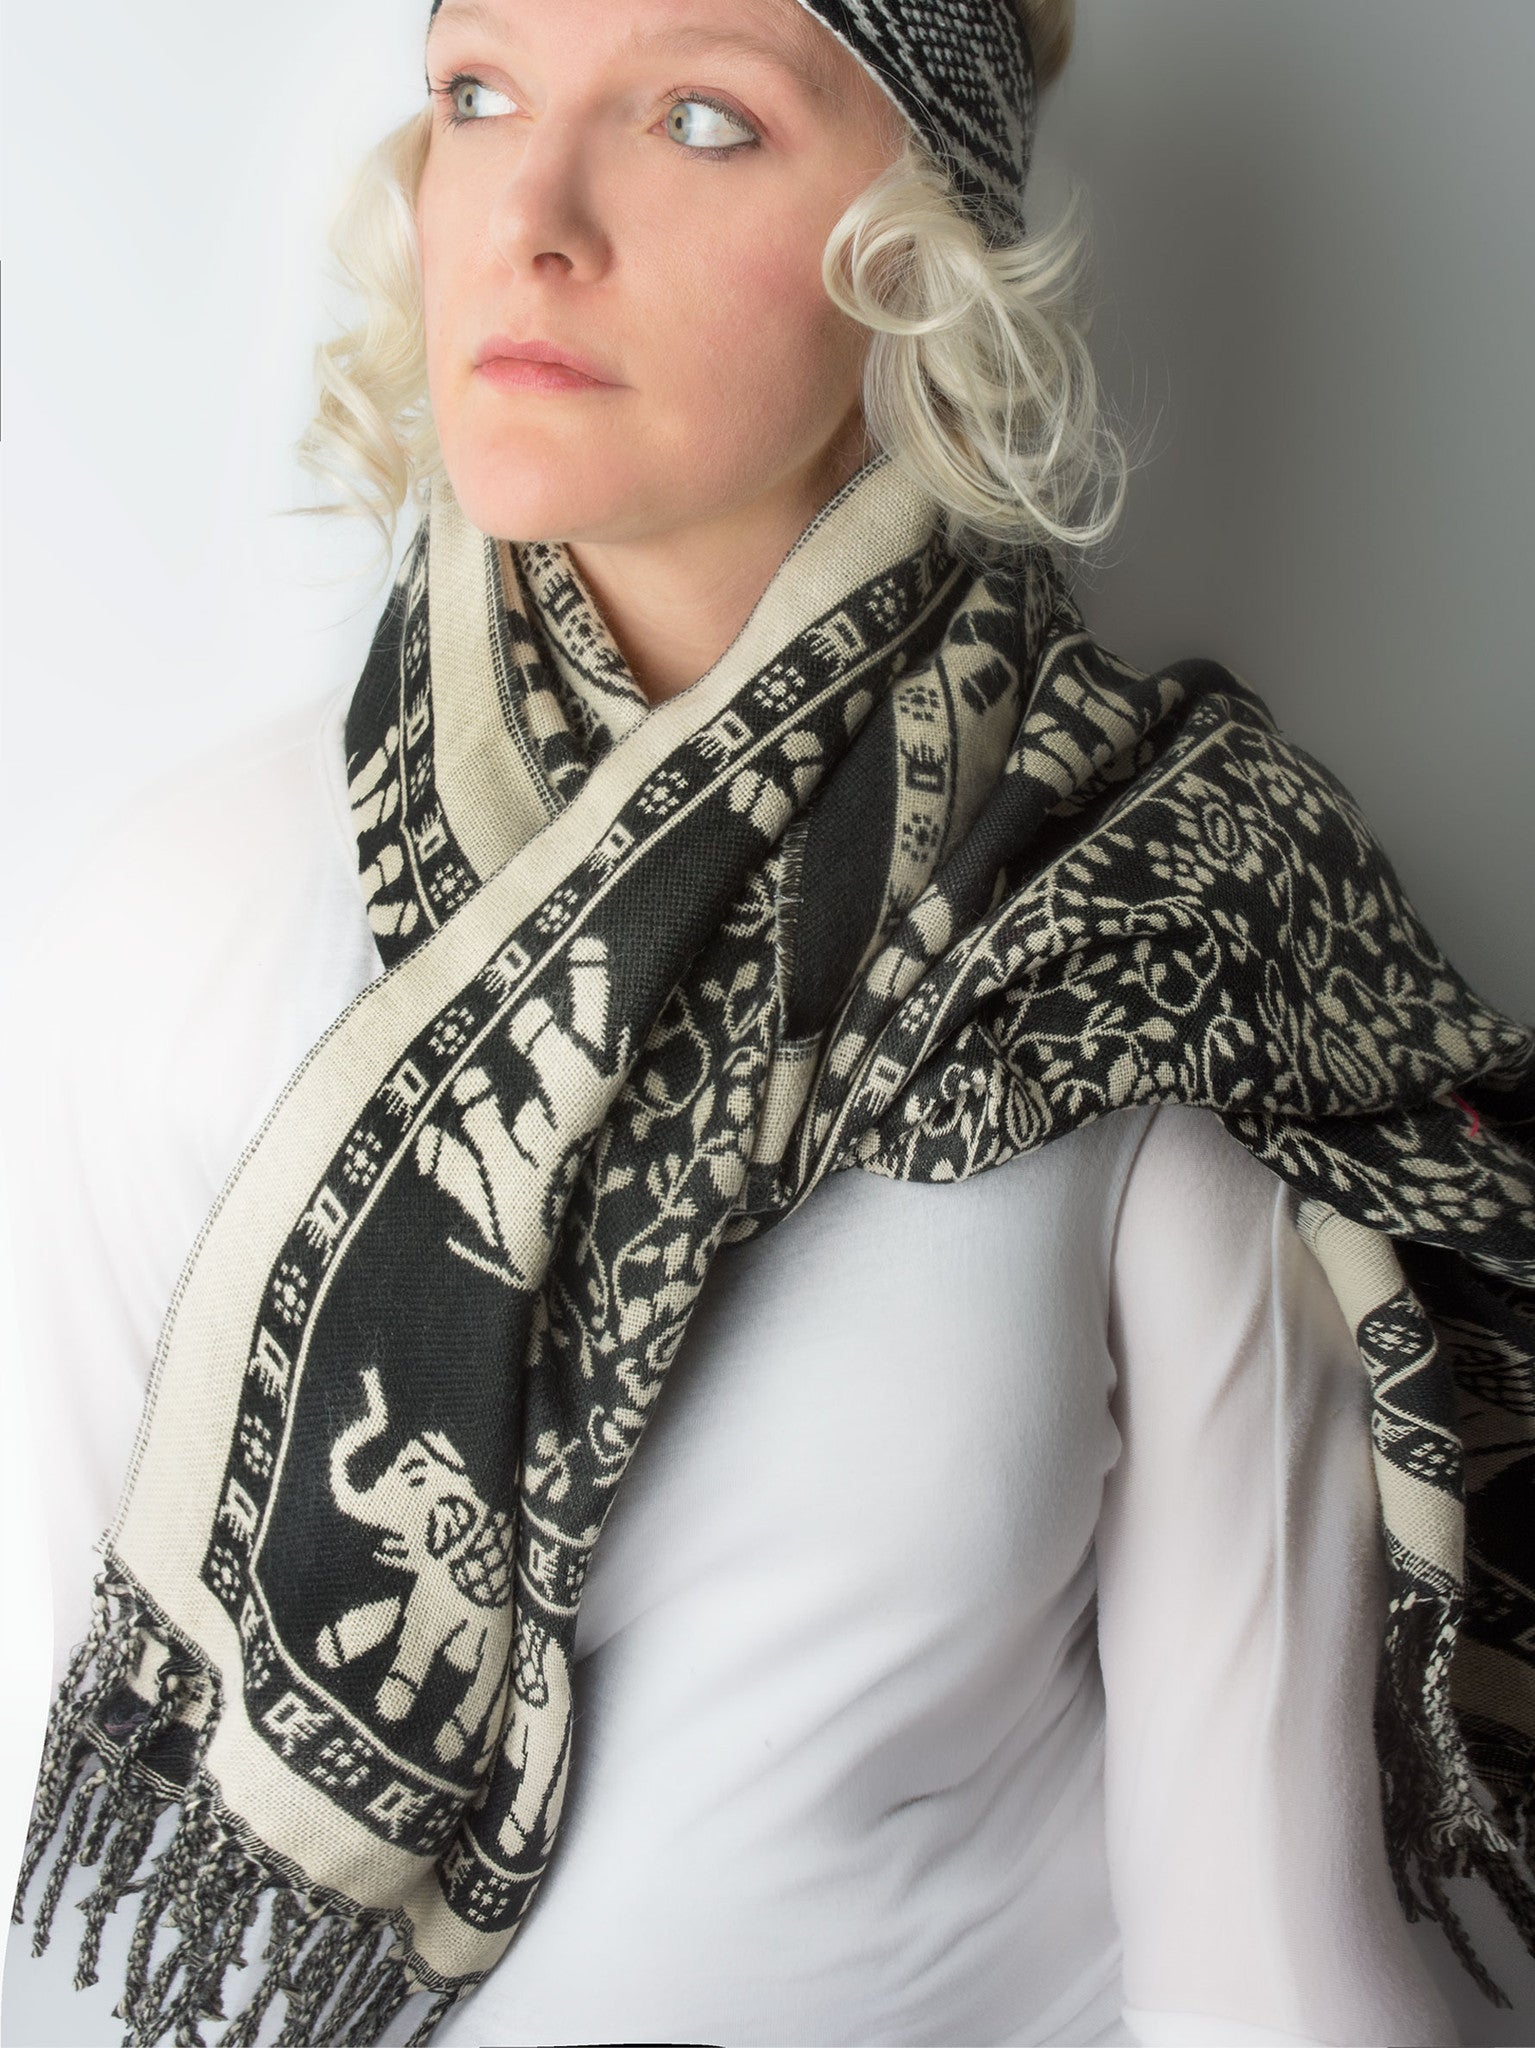 Scarves - Hathi Winter Blanket Scarf, Woven Indian Elephant Design -() Bohomonde  - 2